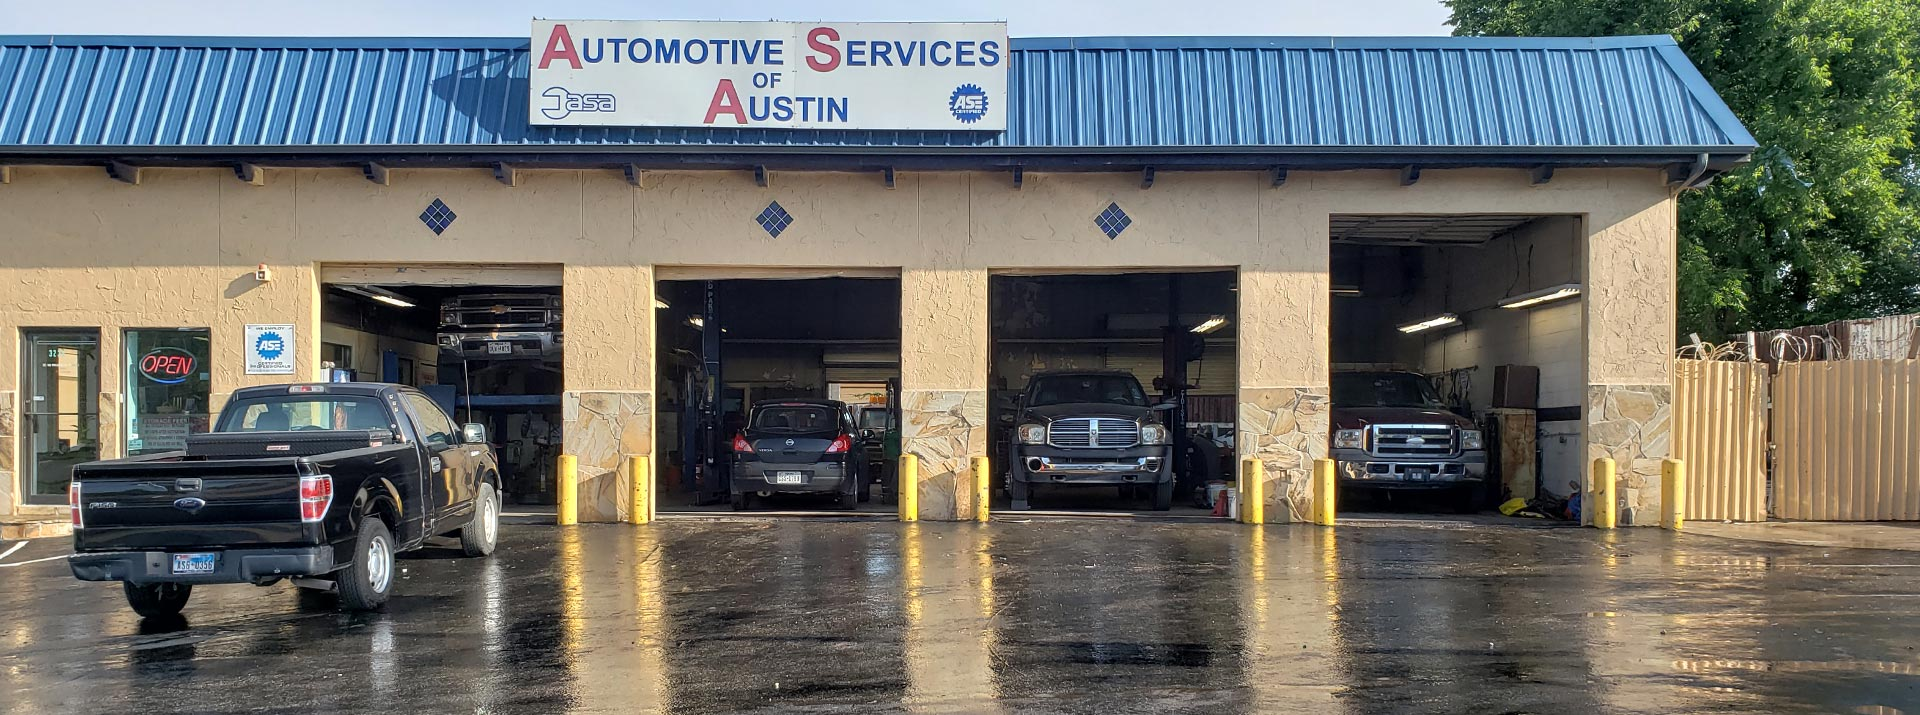 Automotiveservicesaustin Banner2